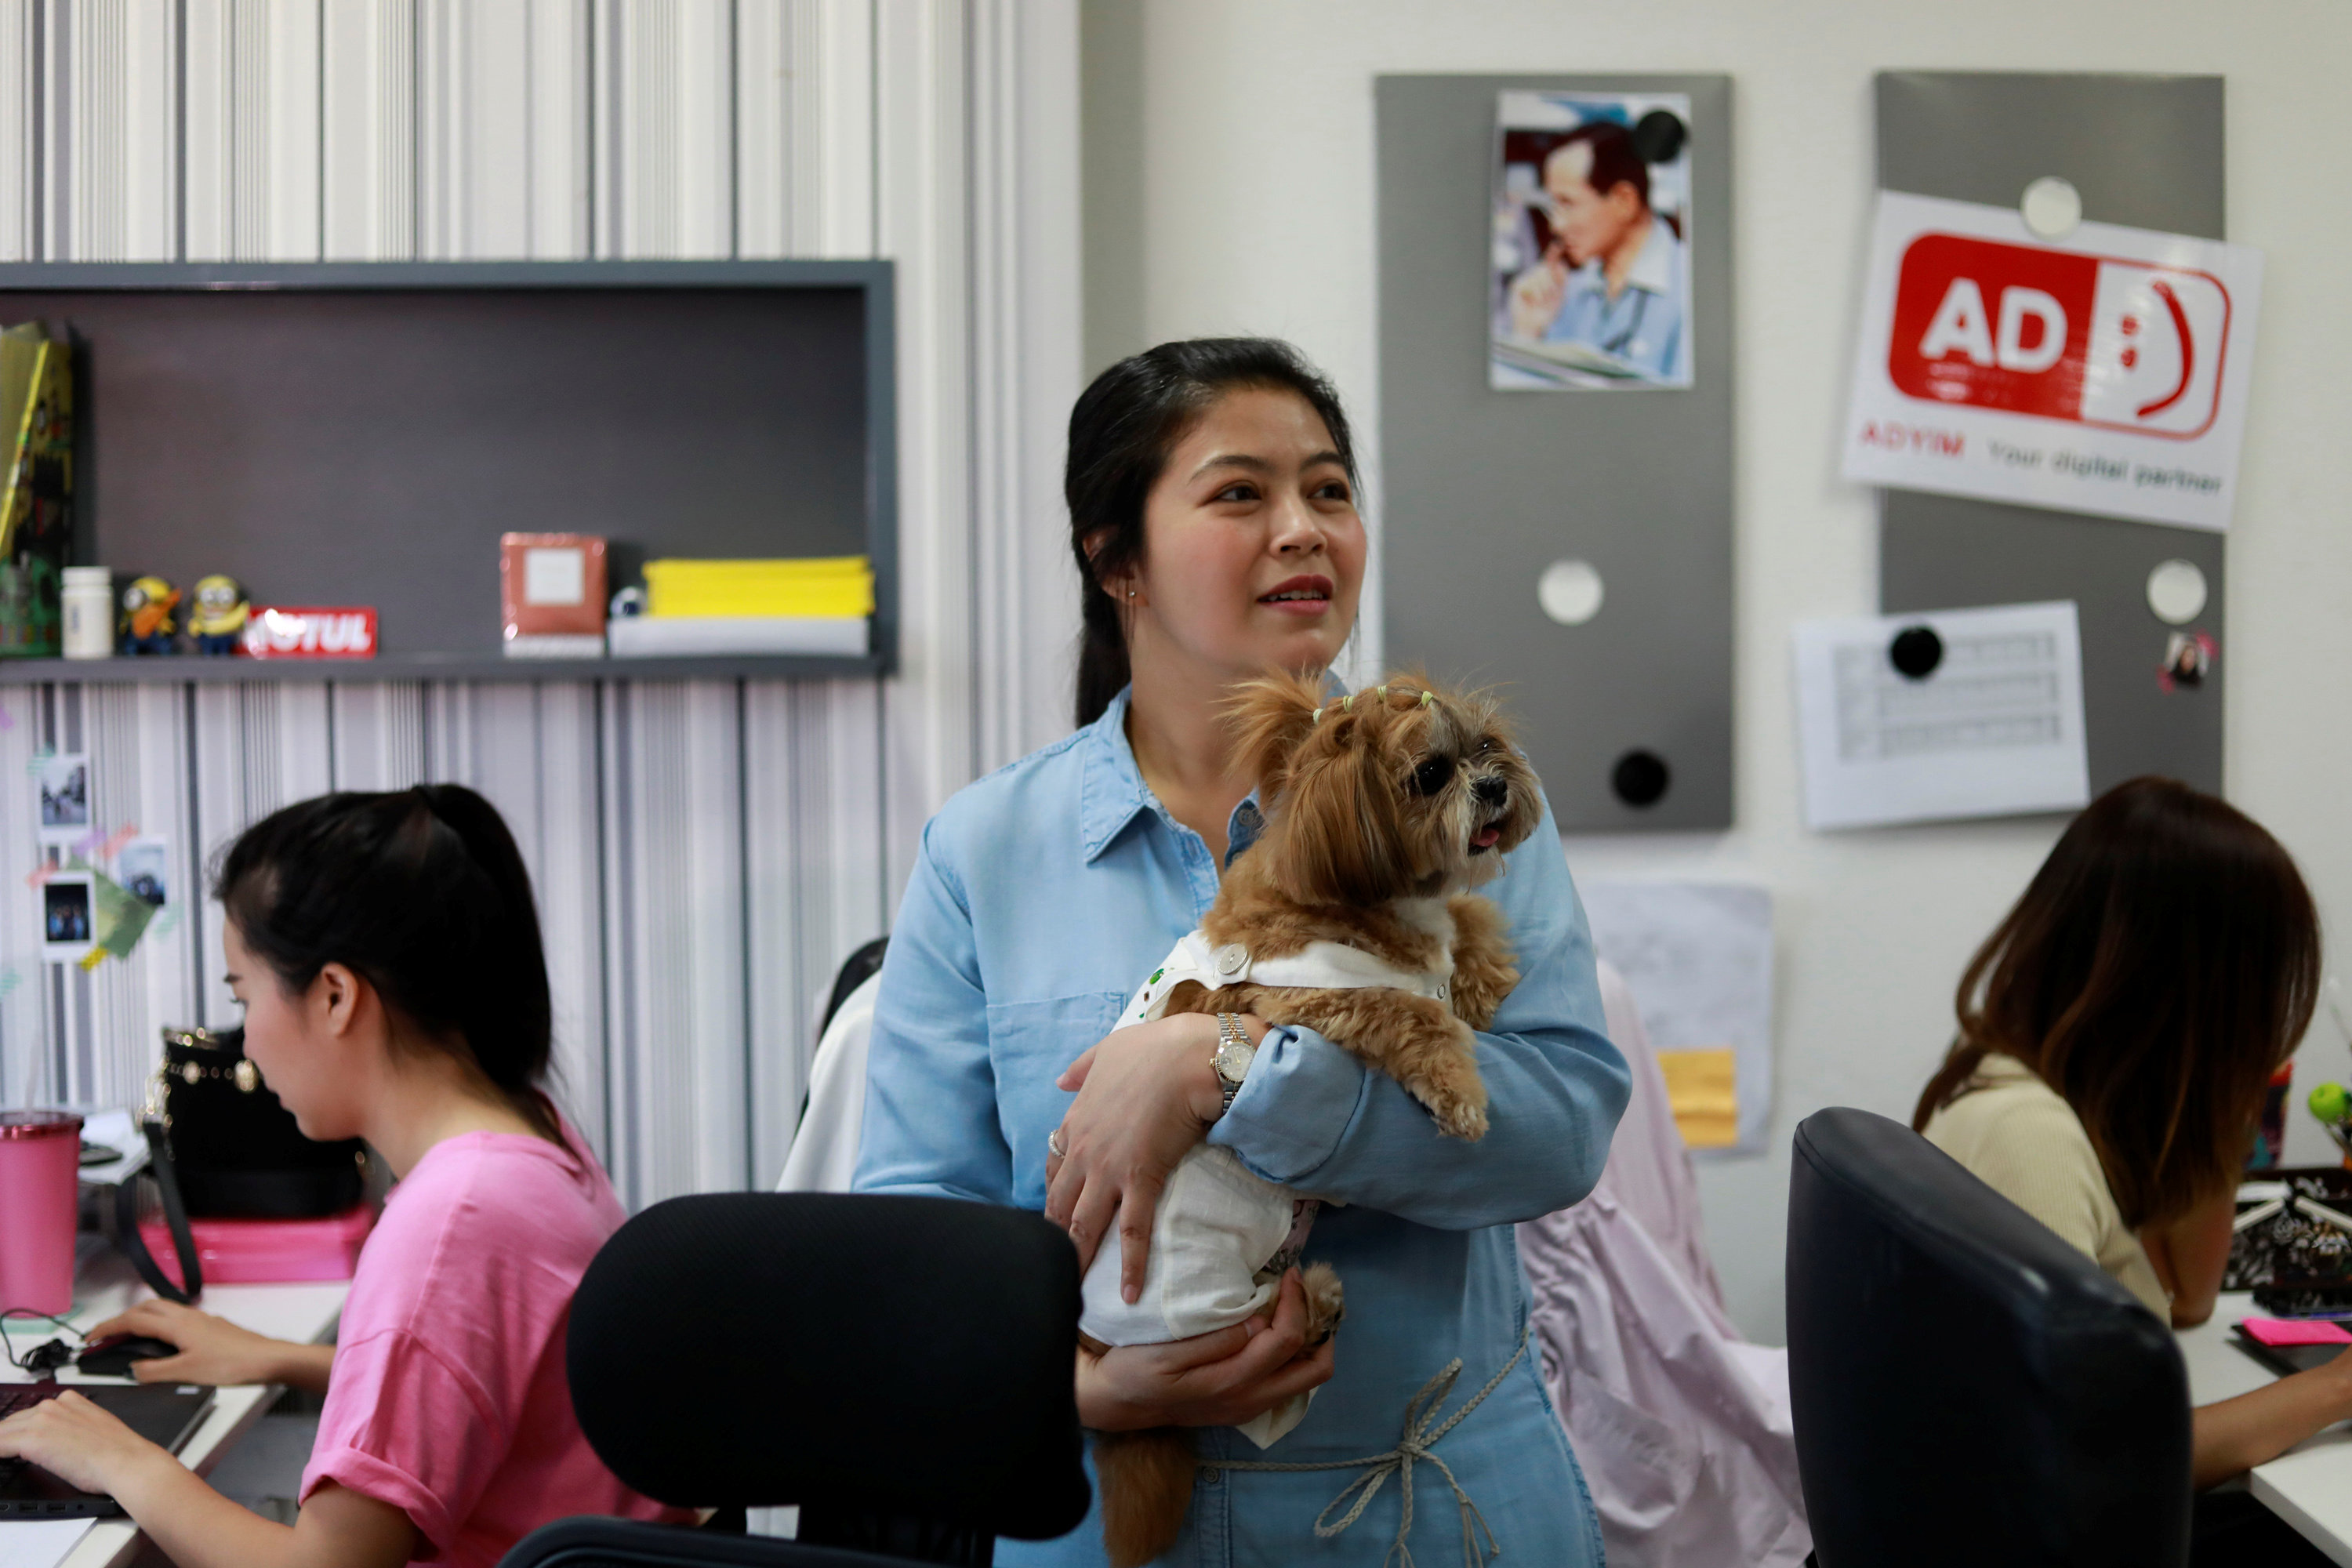 irmas holds a dog as she works in an office of a digital advertising agency which promotes bring-your-dog-to-work in Bangkok